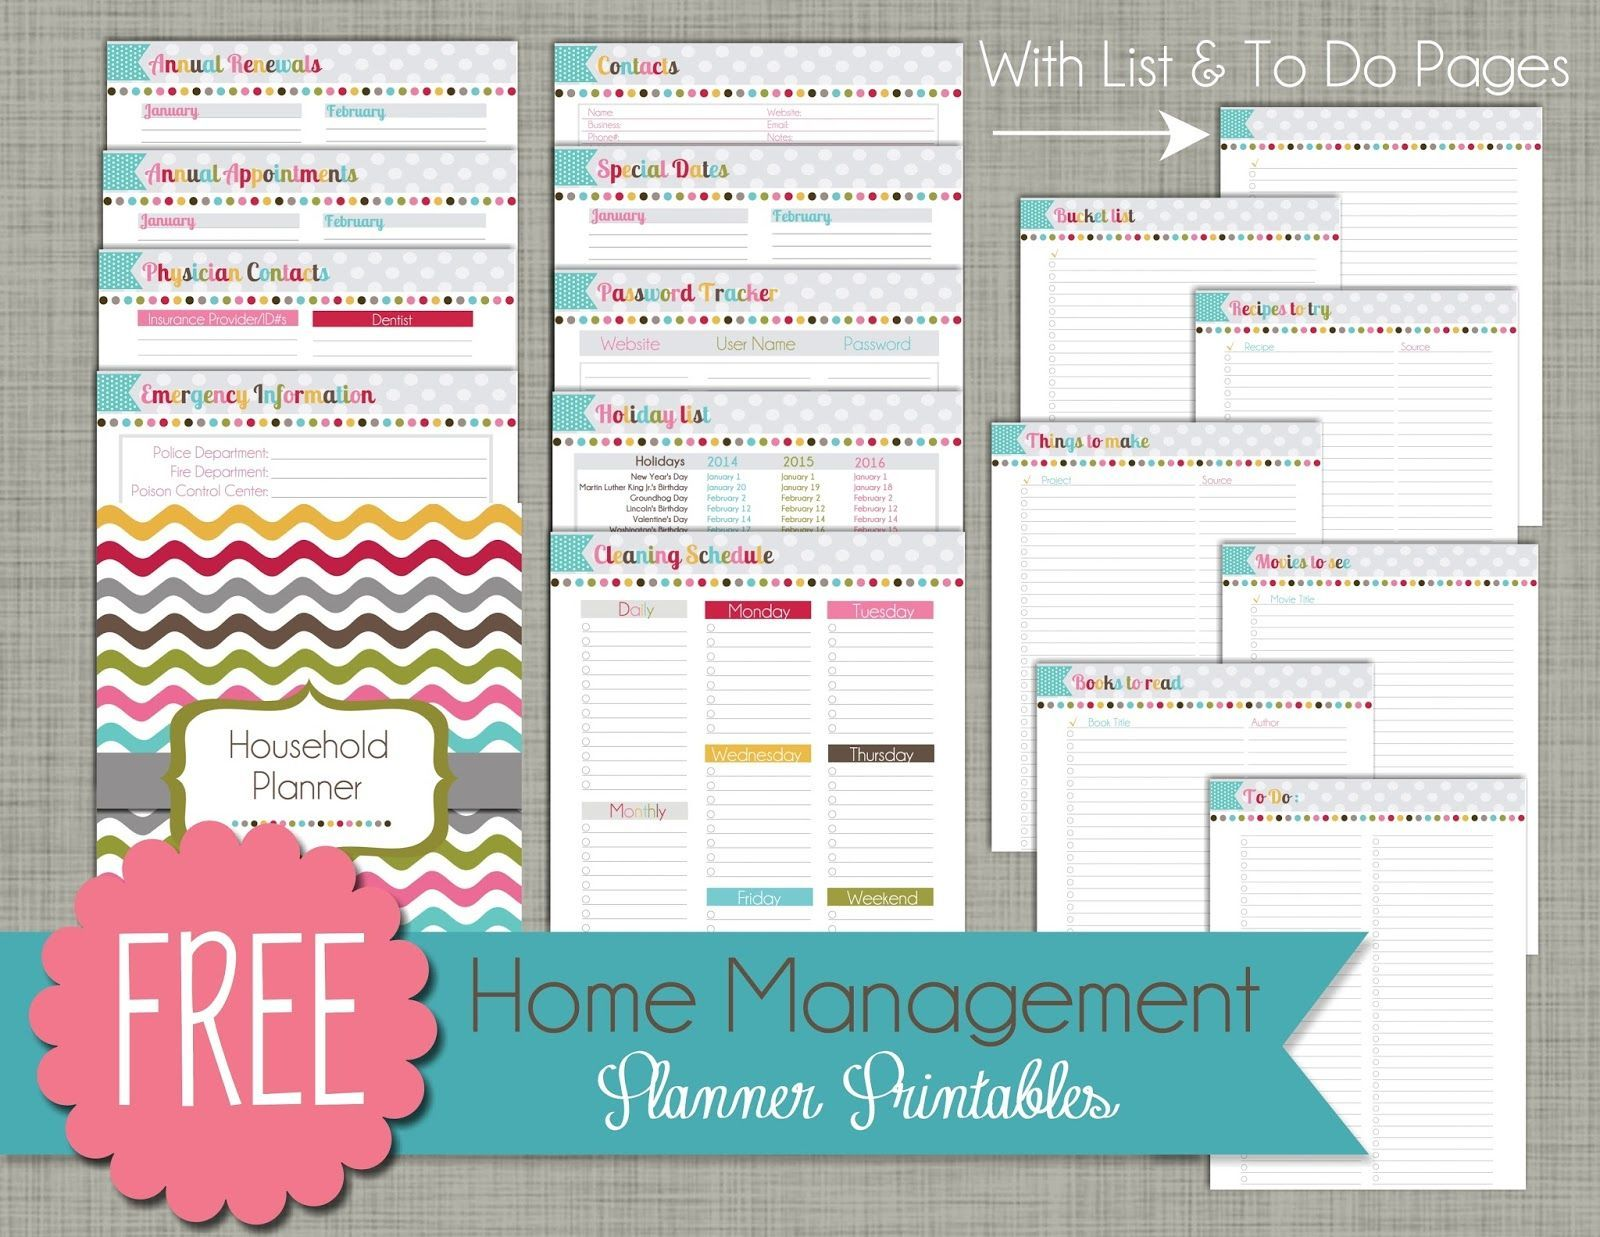 Cool Picture Of Wedding Planner Printable Sheets According